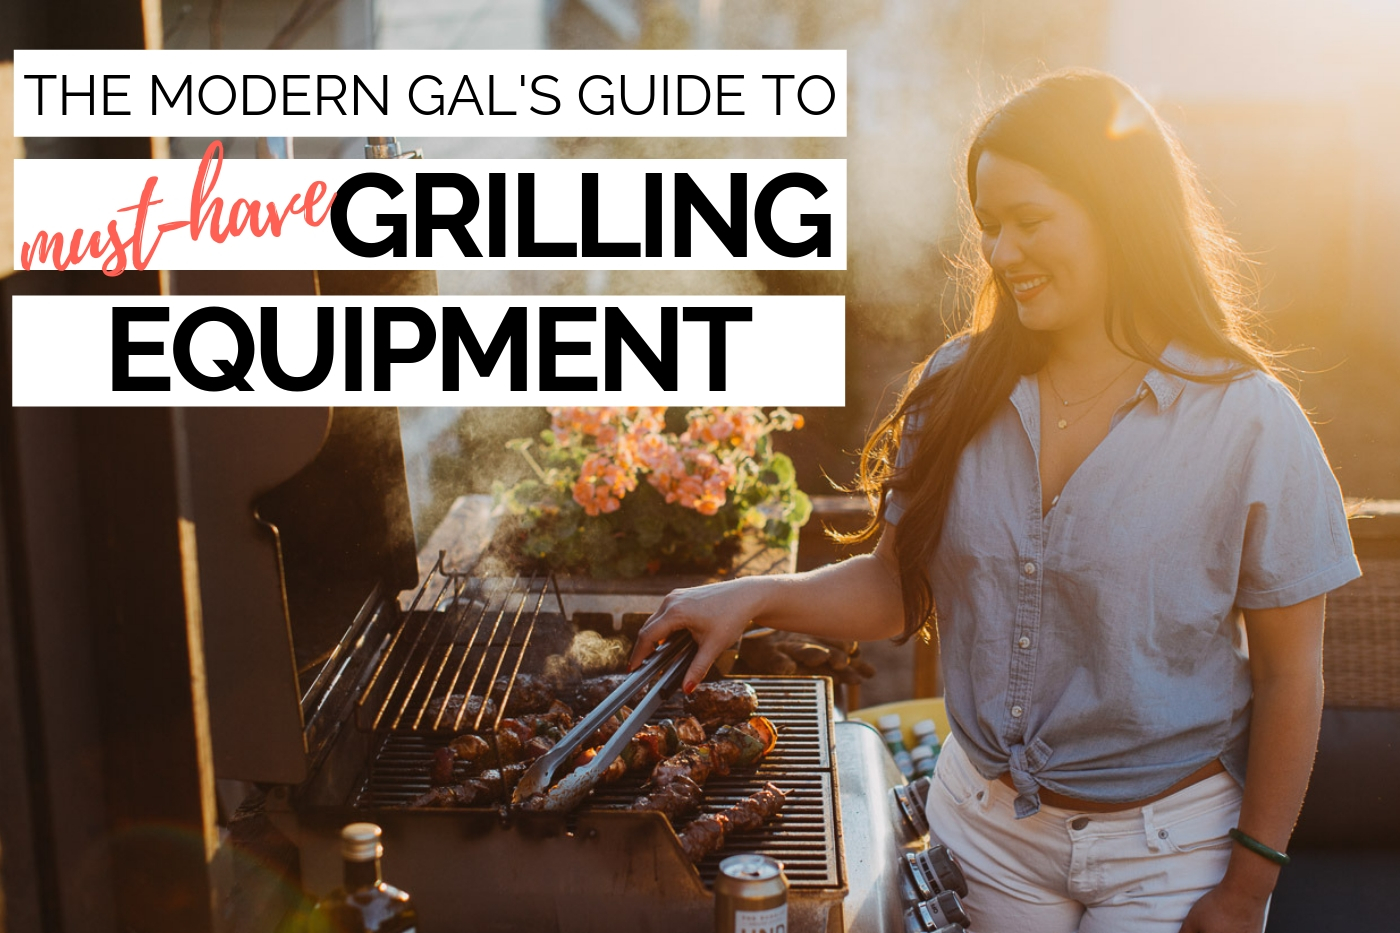 a modern gal's guide to must-have grilling equipment. the first step in gaining confidence behind the grill is having a solid grilling set up. this post will walk you through some must-haves when it comes to setting up your grill this summer! #playswellwithbutter #grilling #grillingtips #grillingstation #outdoorgrilling #grillingDIY #howtogrill #grillingforbeginners